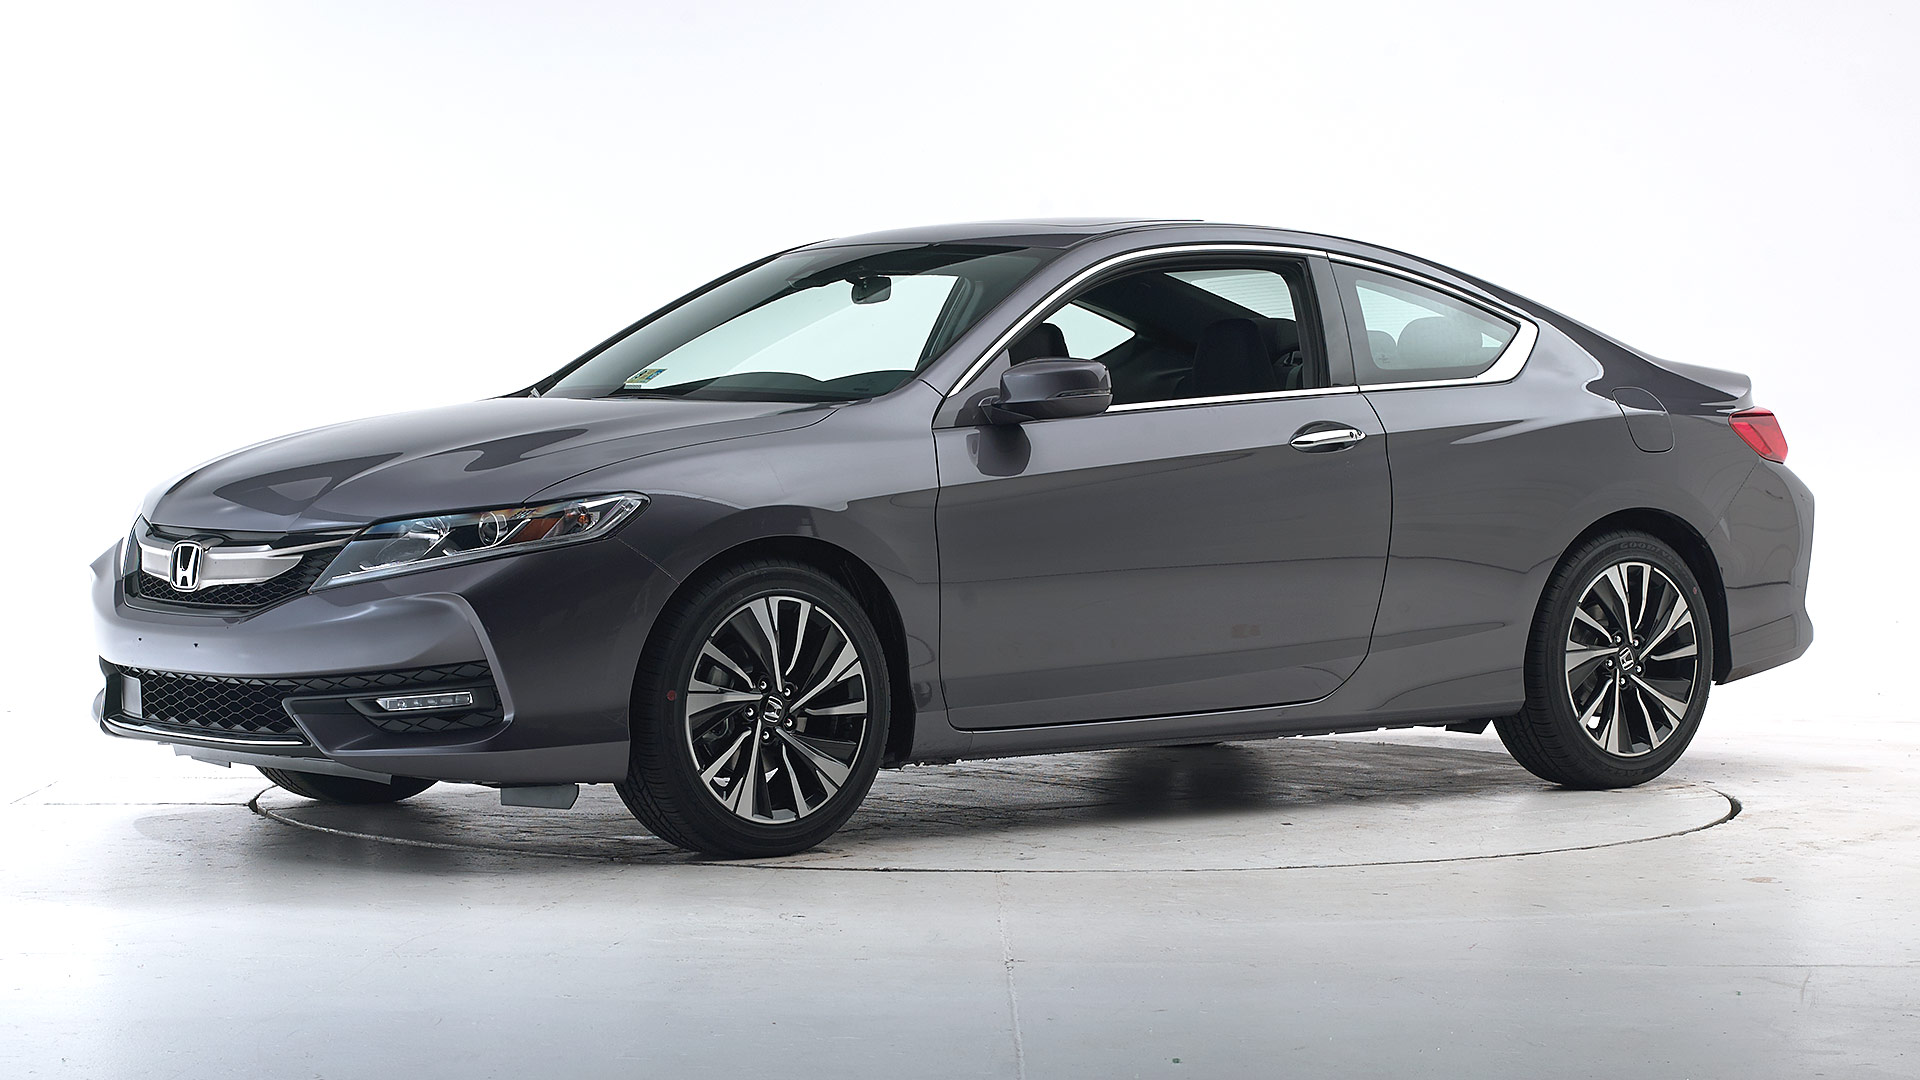 2017 Honda Accord 2-door coupe